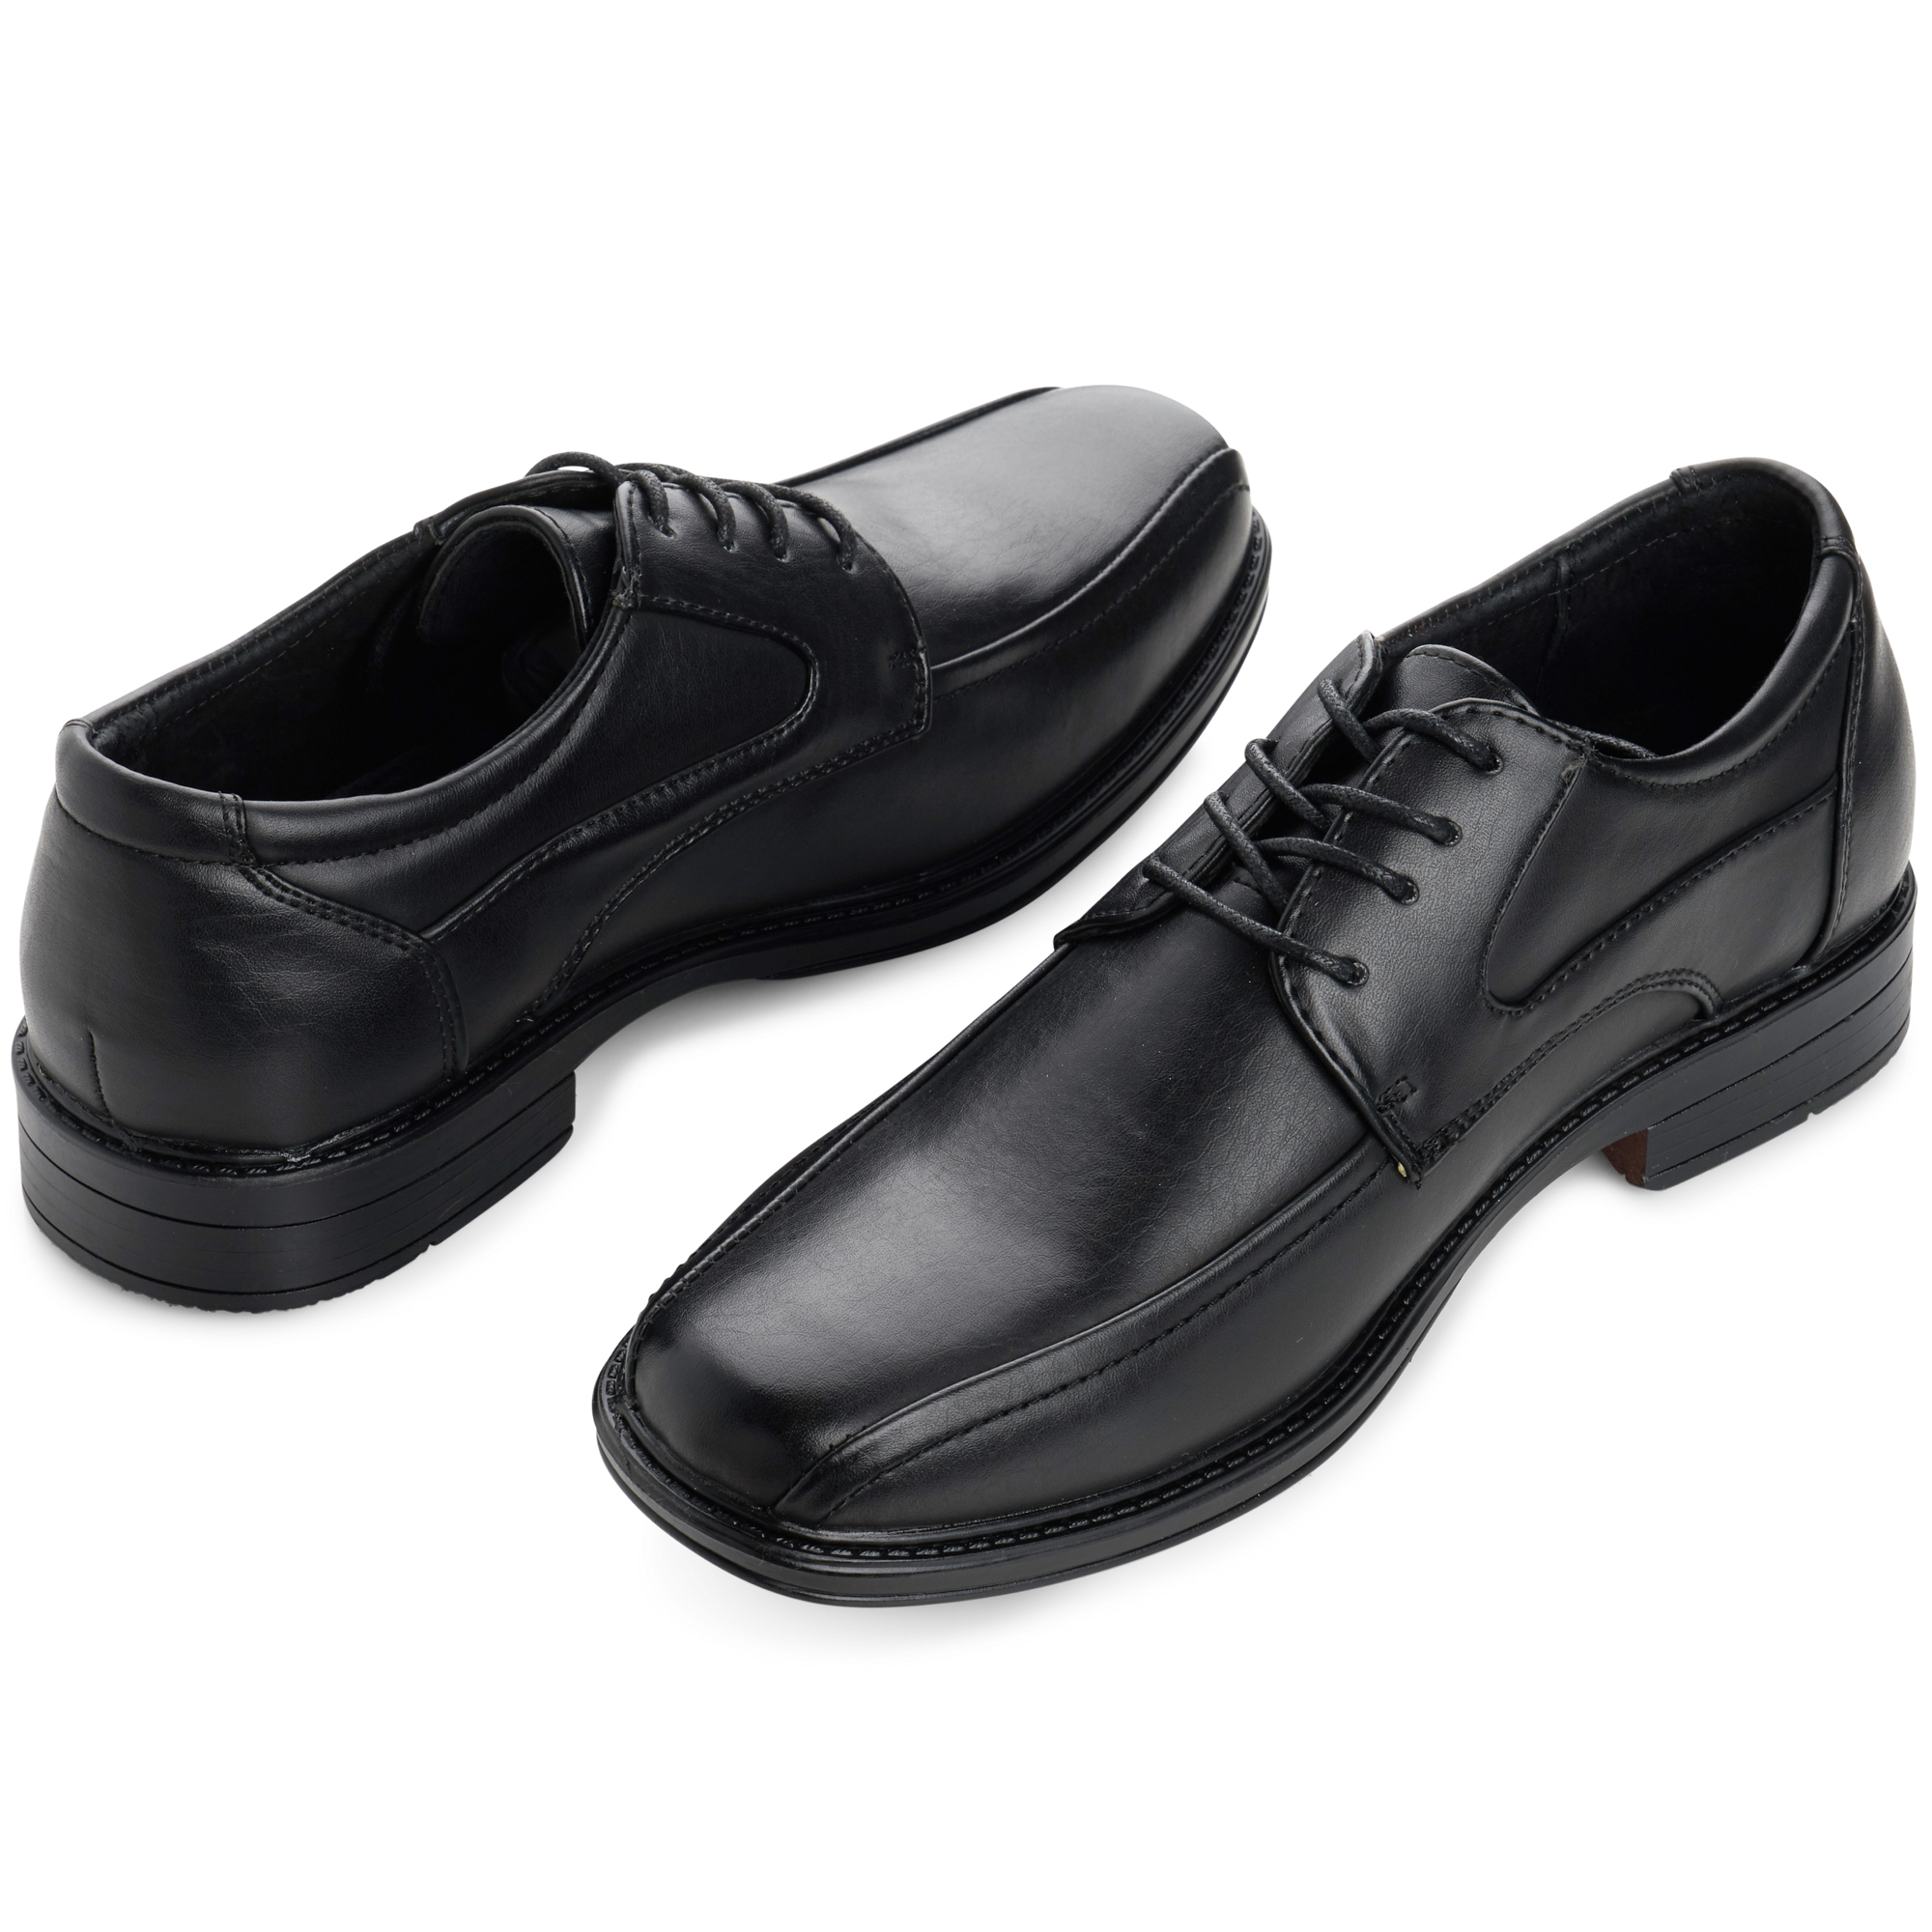 AlpineSwiss-Mens-Oxford-Dress-Shoes-Lace-Up-Leather-Lined-Baseball-Stitch-Loafer